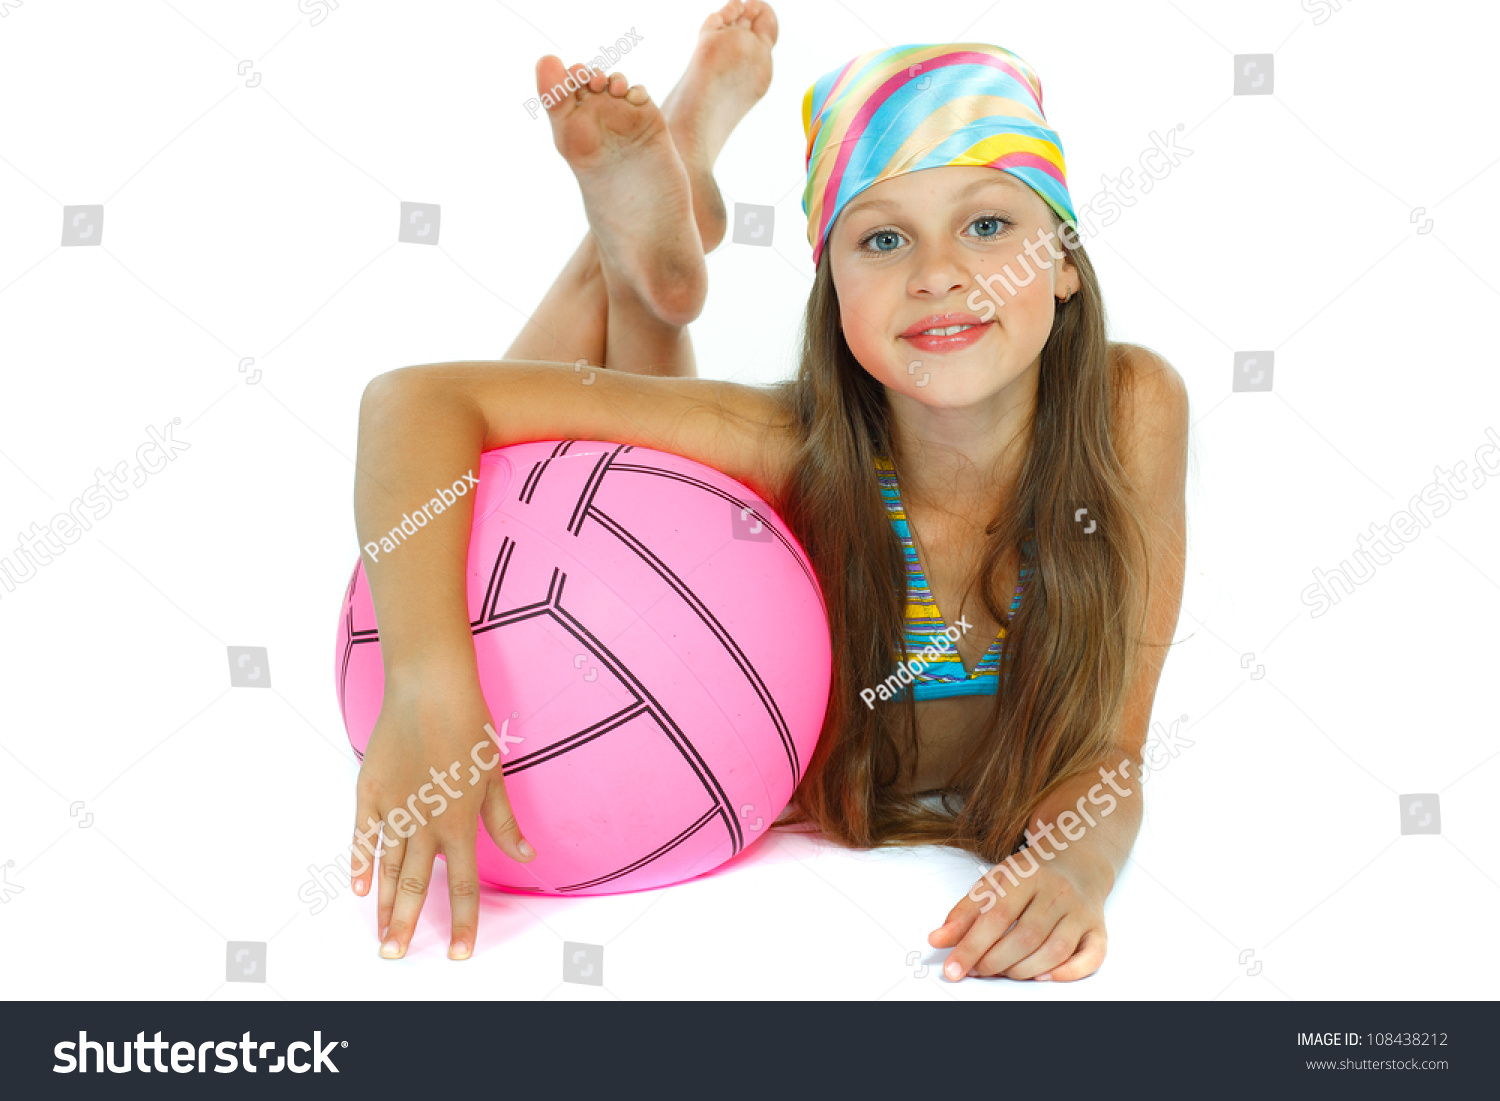 Cute Little Girl In Swimming Suit With A Ball, Isolated On ...